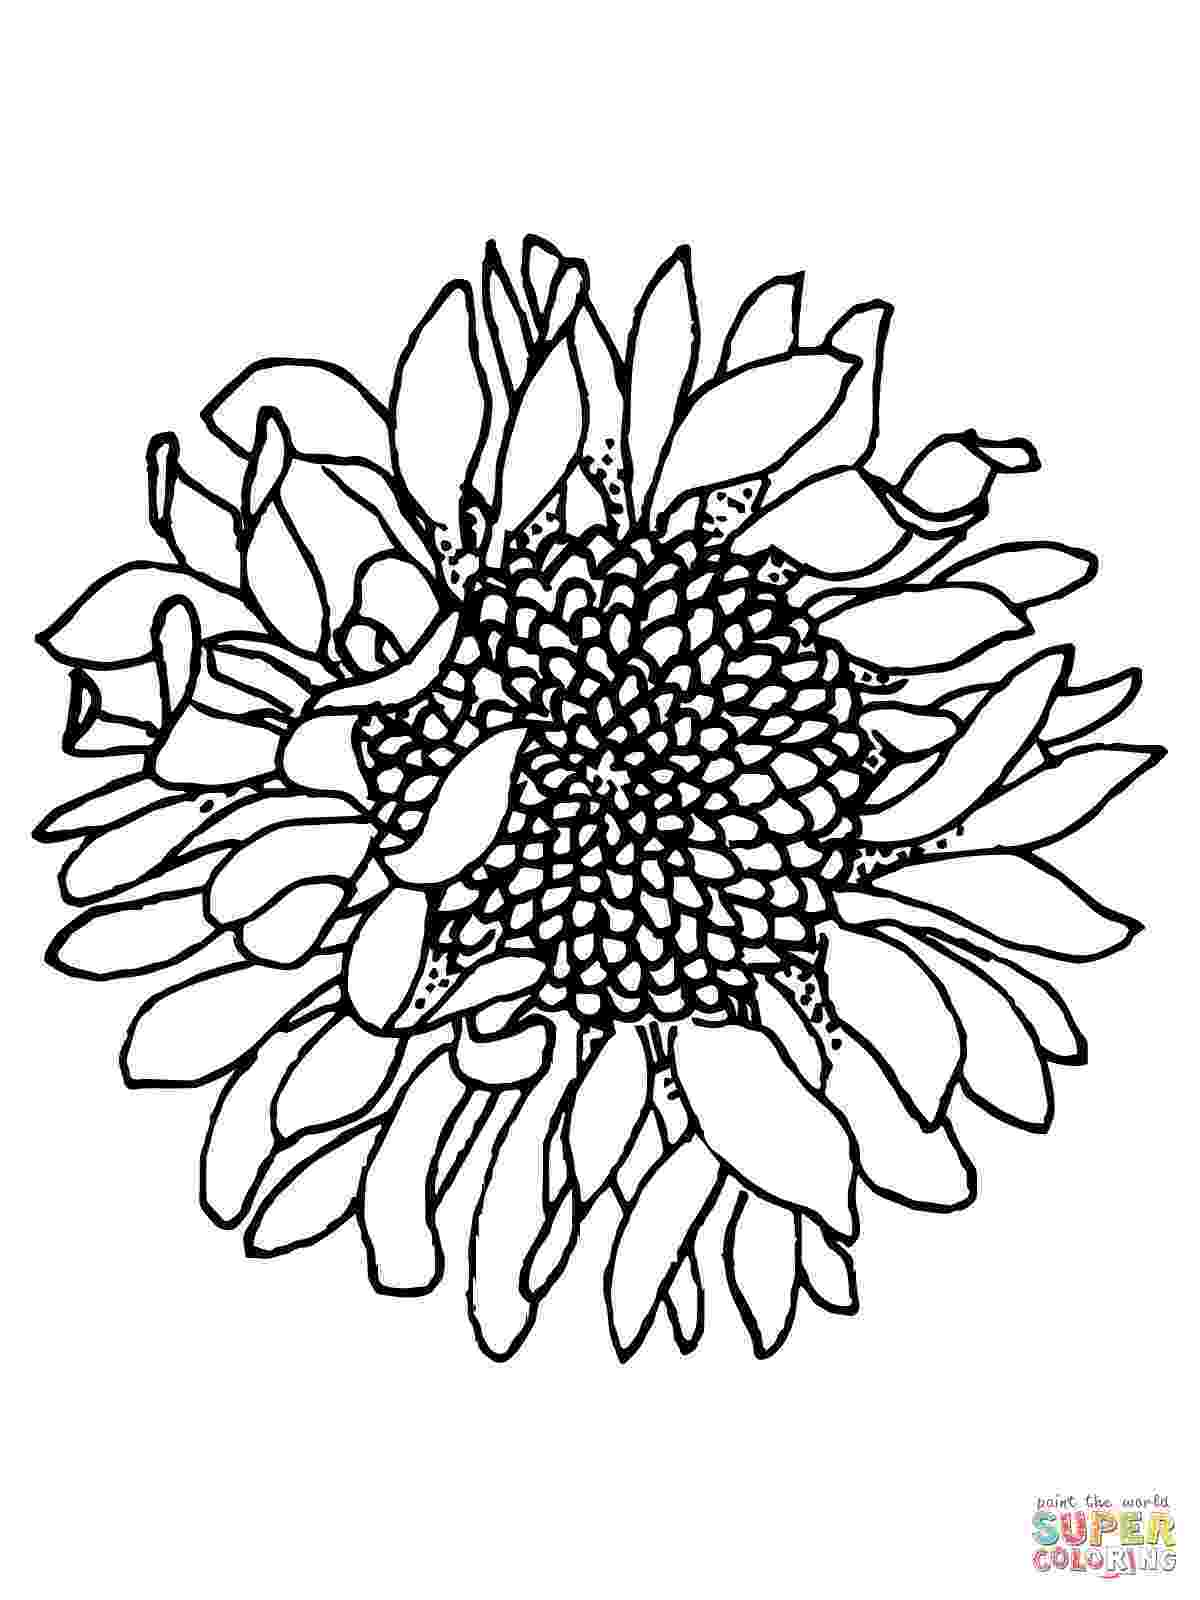 sunflower color sheet sunflower coloring pages free coloring pages color sunflower sheet